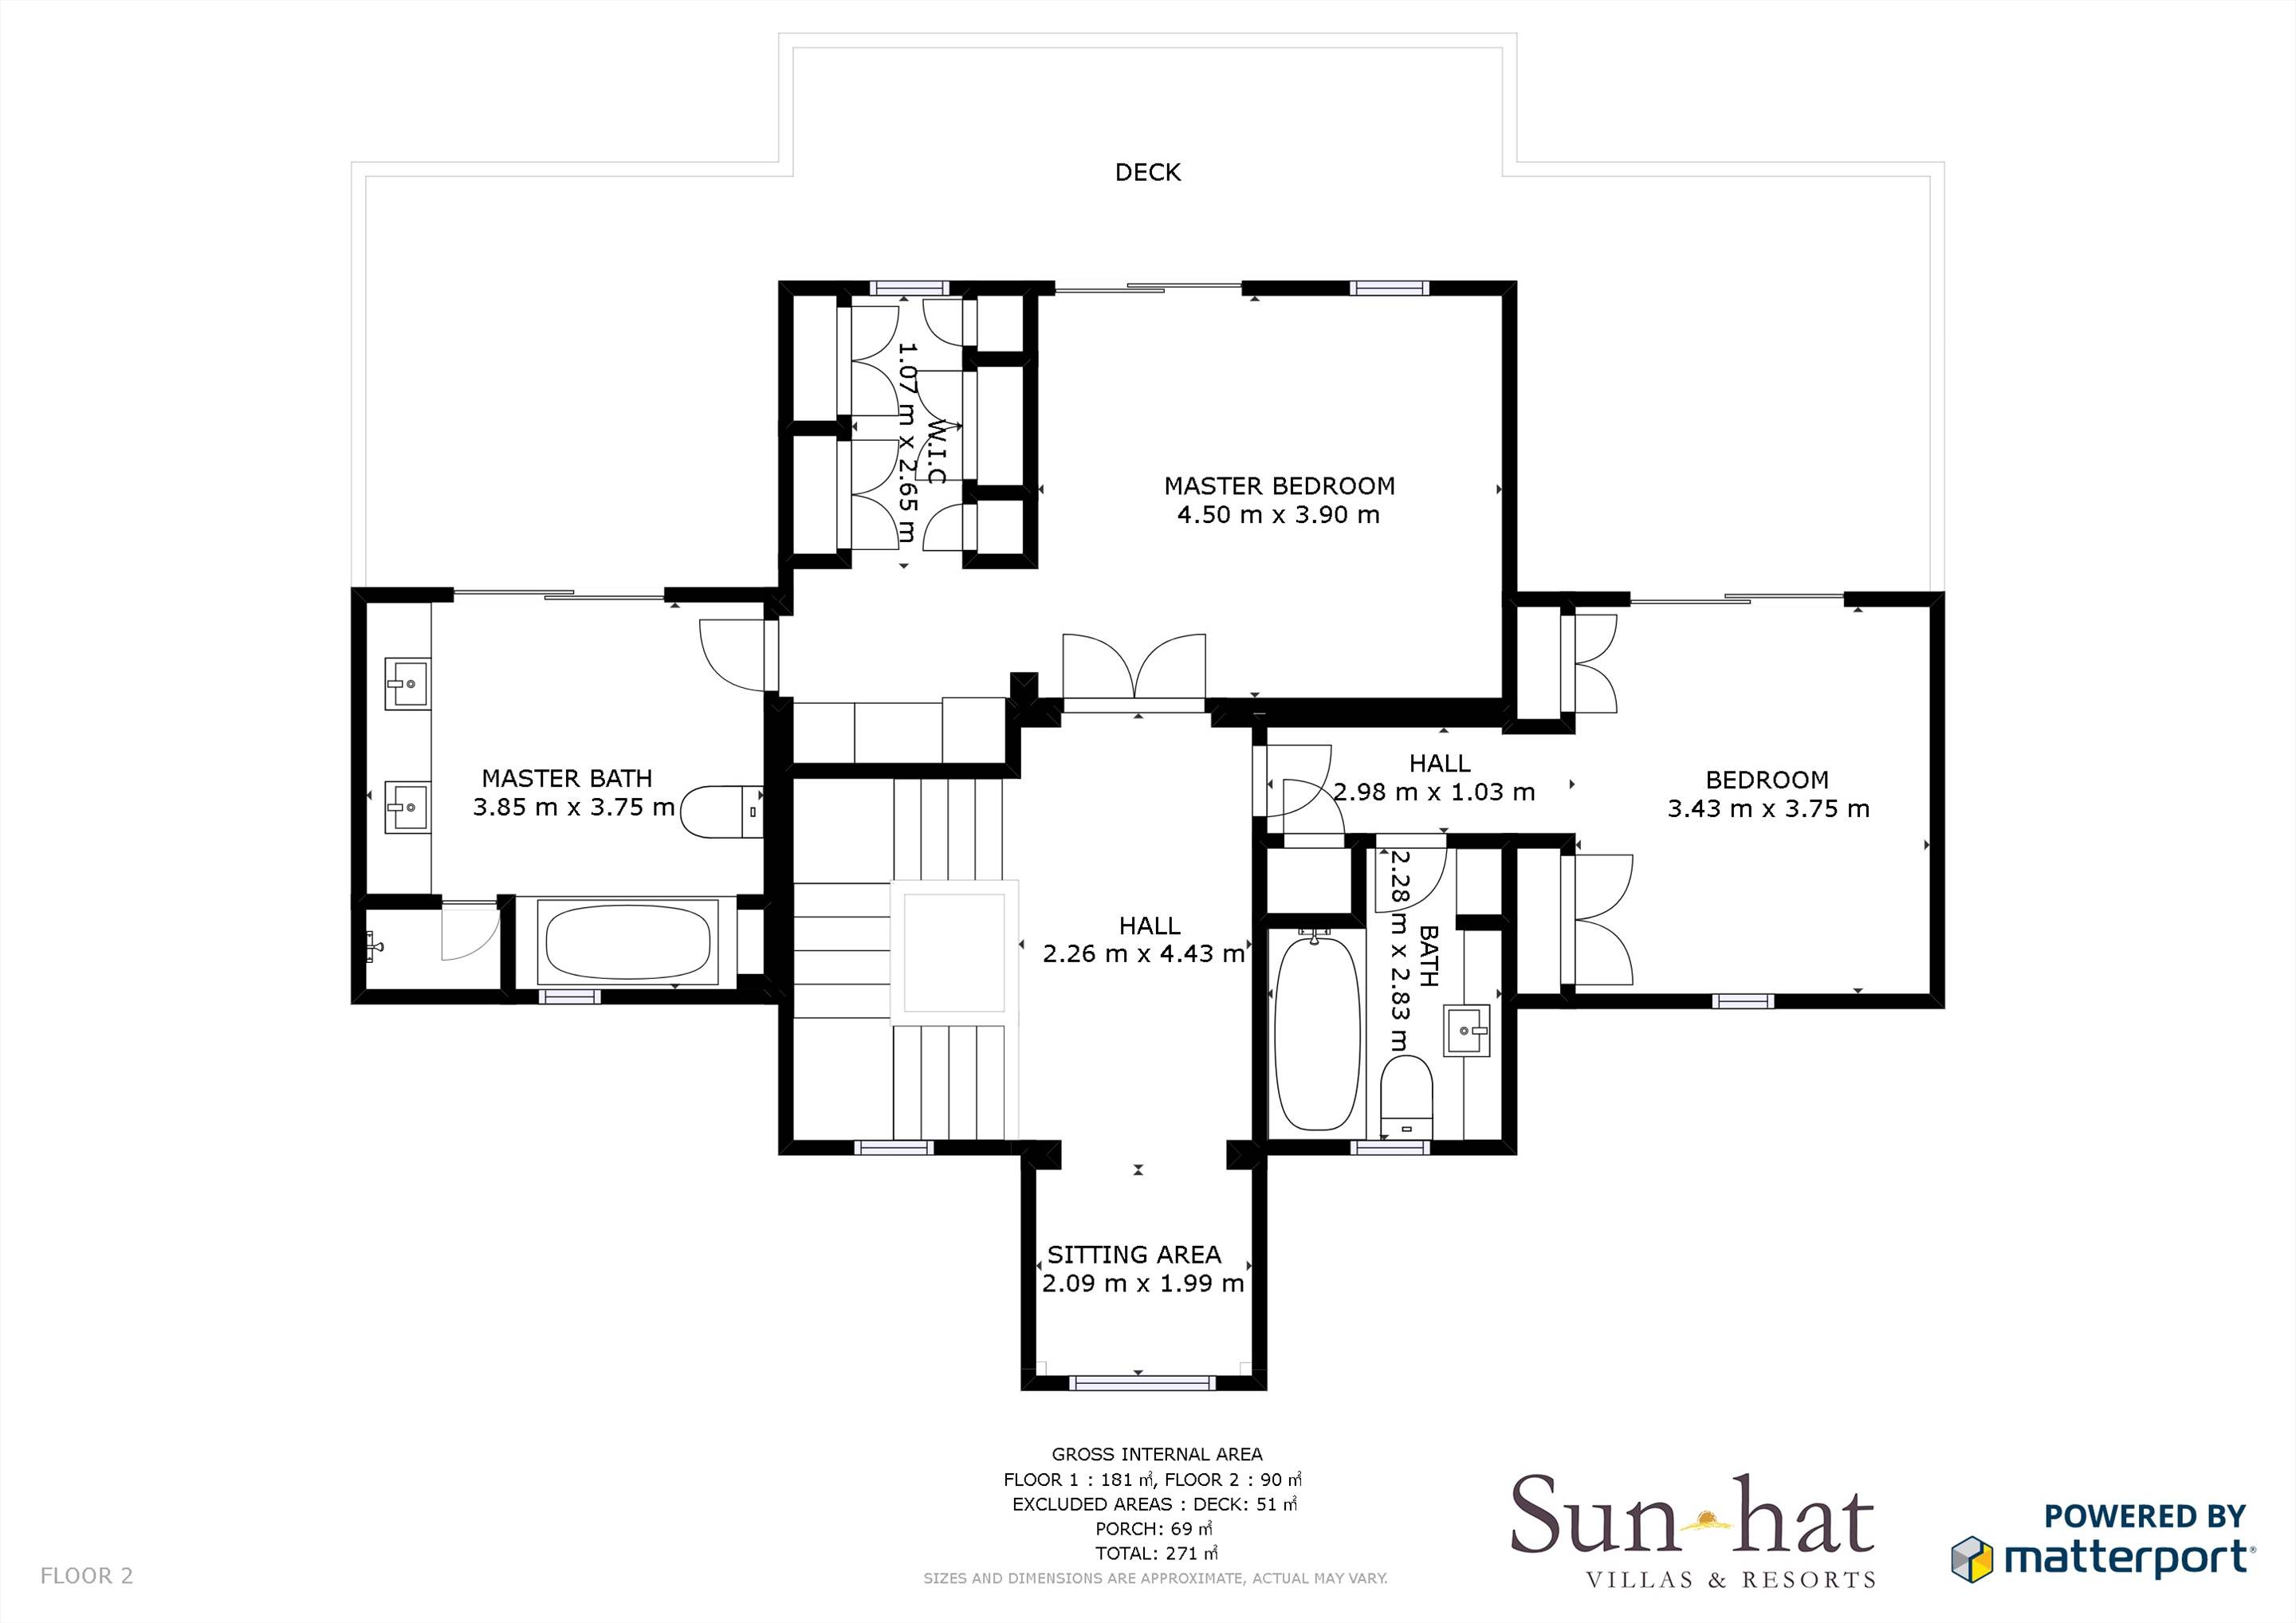 Villa Campainha, 4 Bedroom Rental Floorplan #2